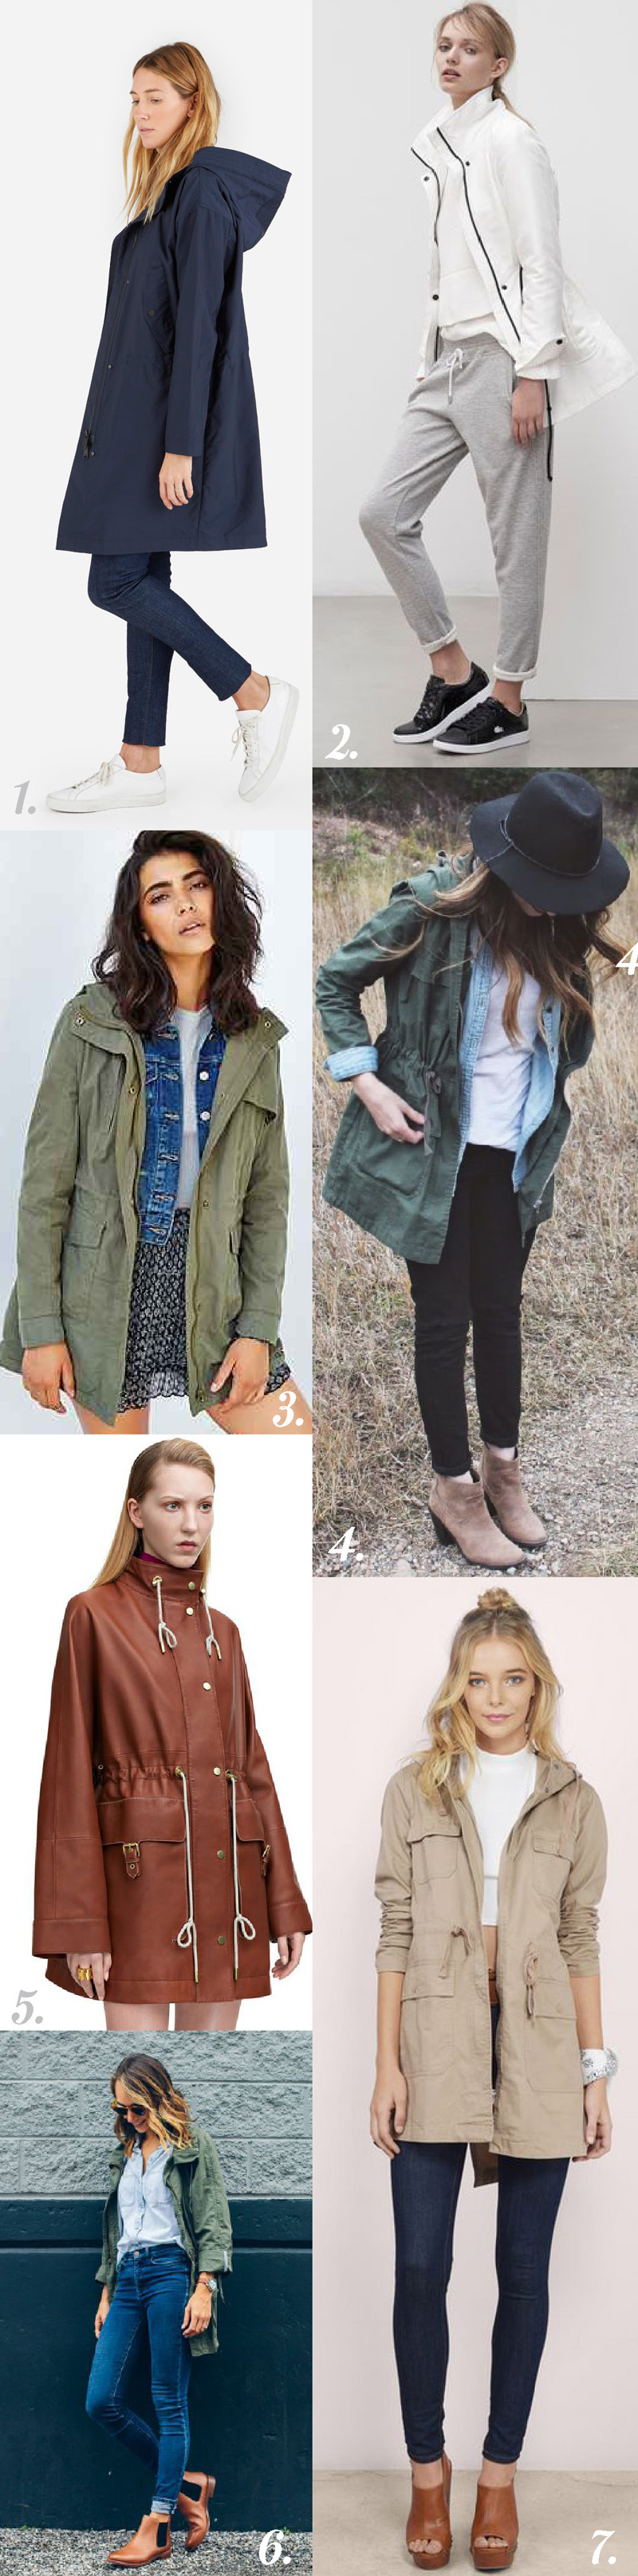 kelly-anorak-jacket-pattern_outfit-and-styling-inspiration2